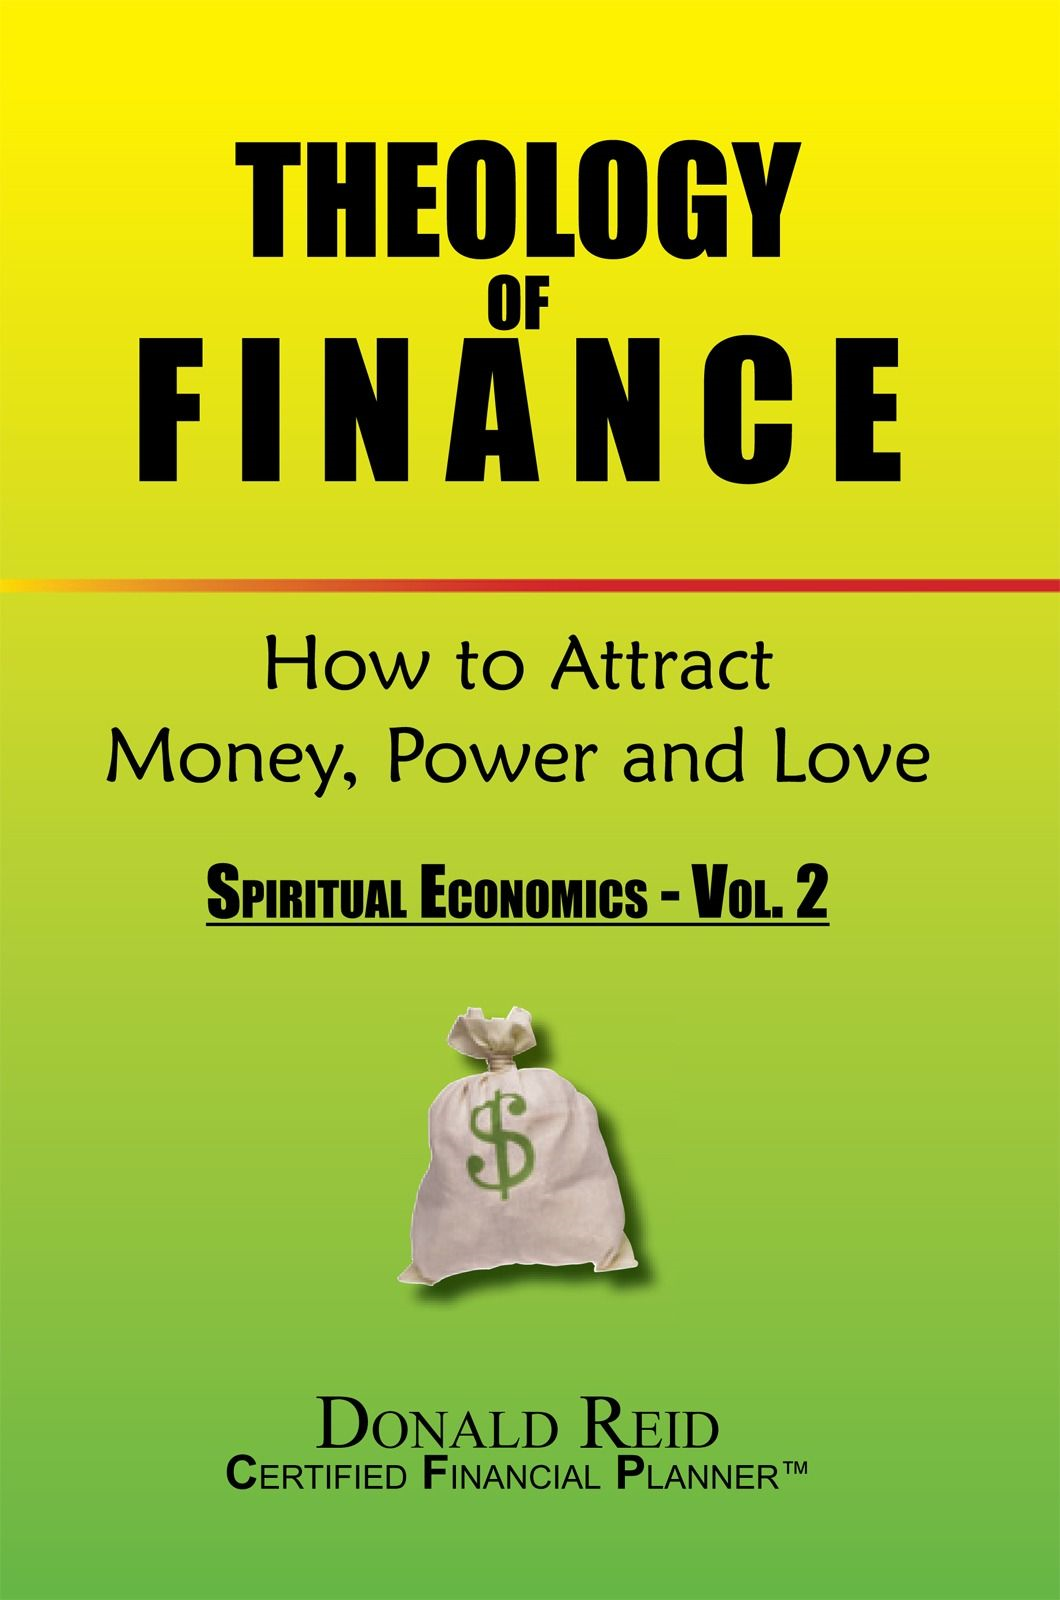 Theology of Finance: How to Attract Money, Power and Love By: Donald Reid